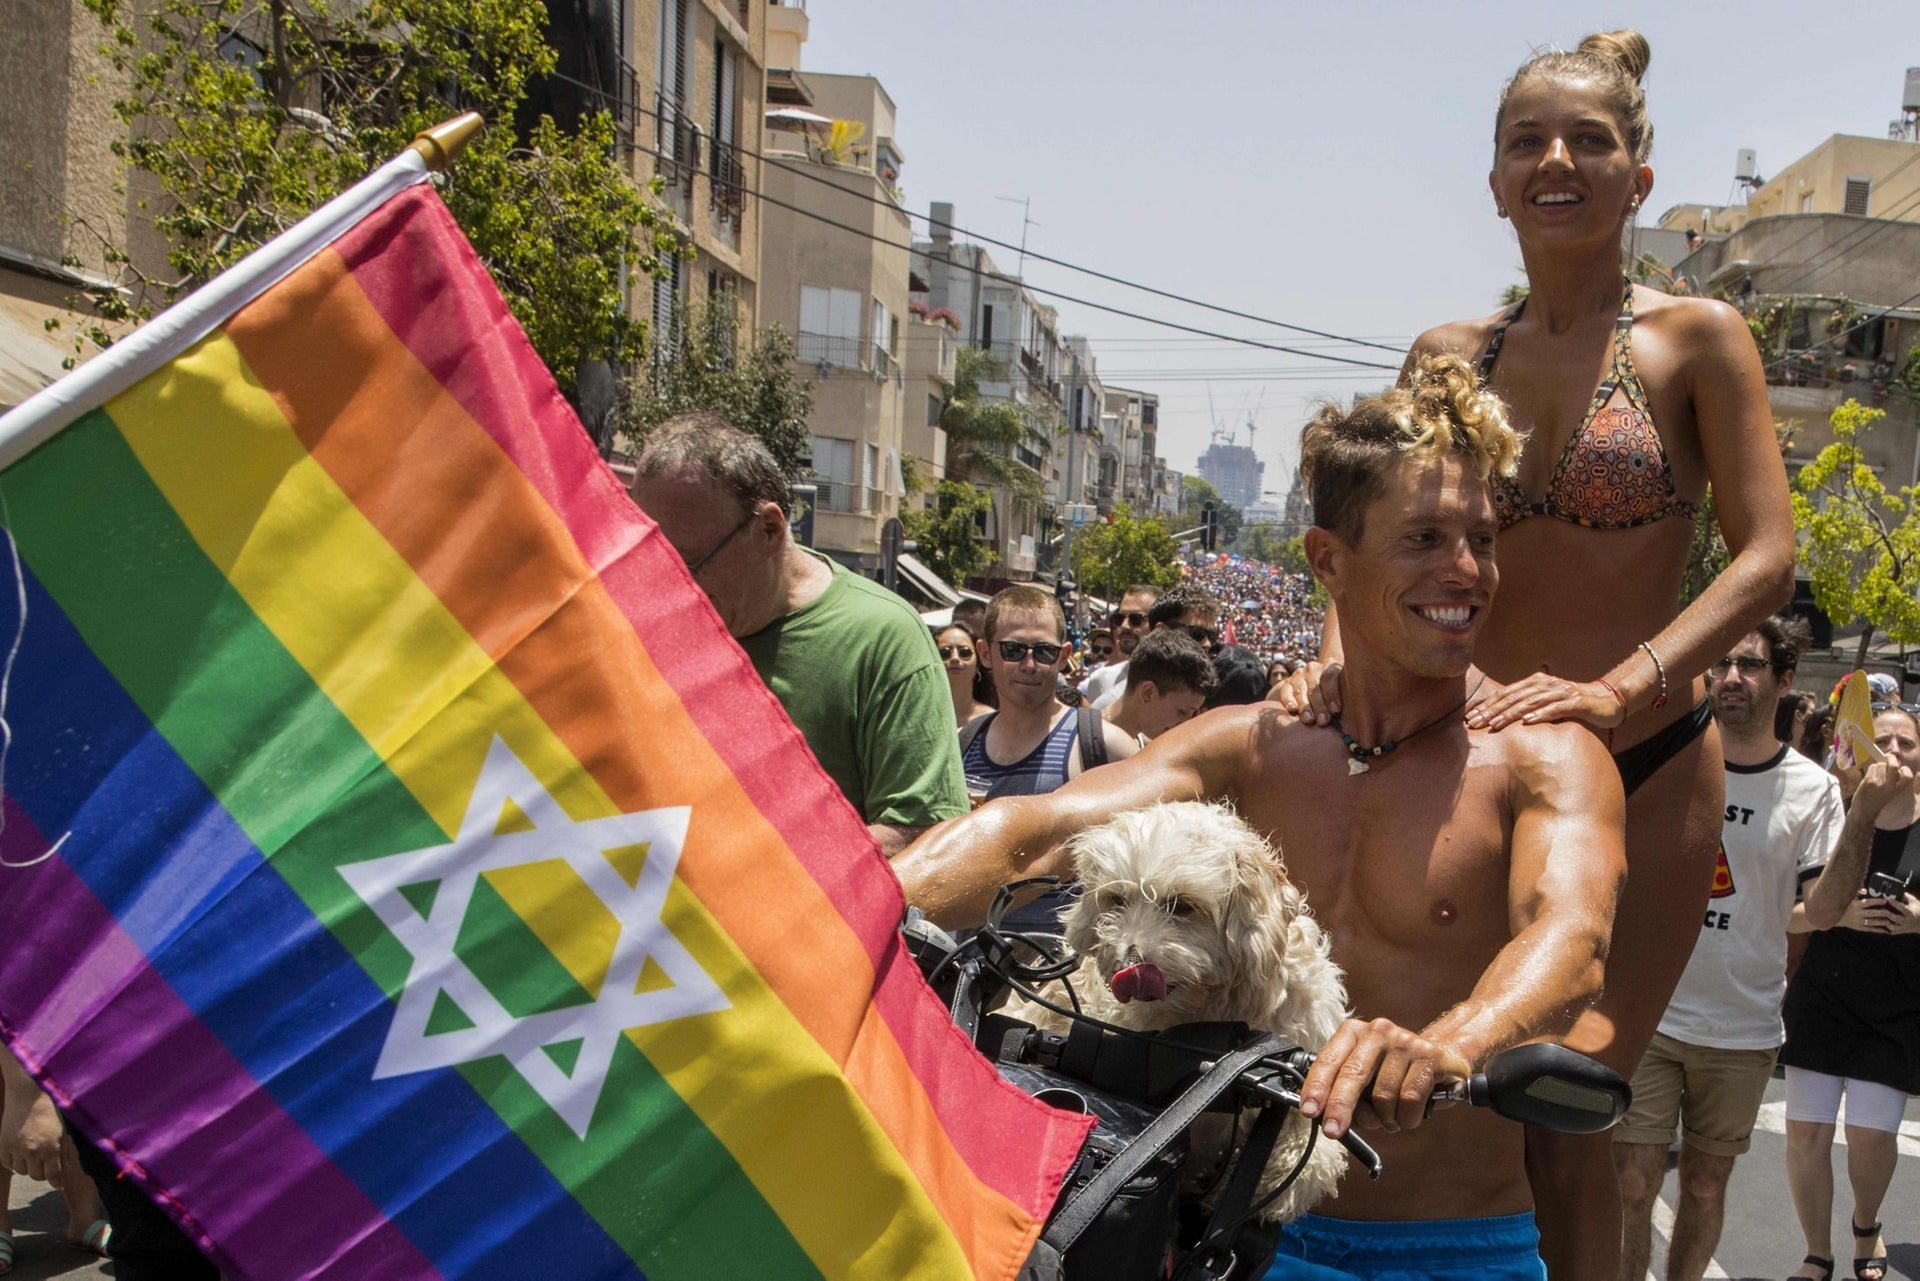 Revelers partaking in Tel Aviv's pride parade, June 9, 2017.